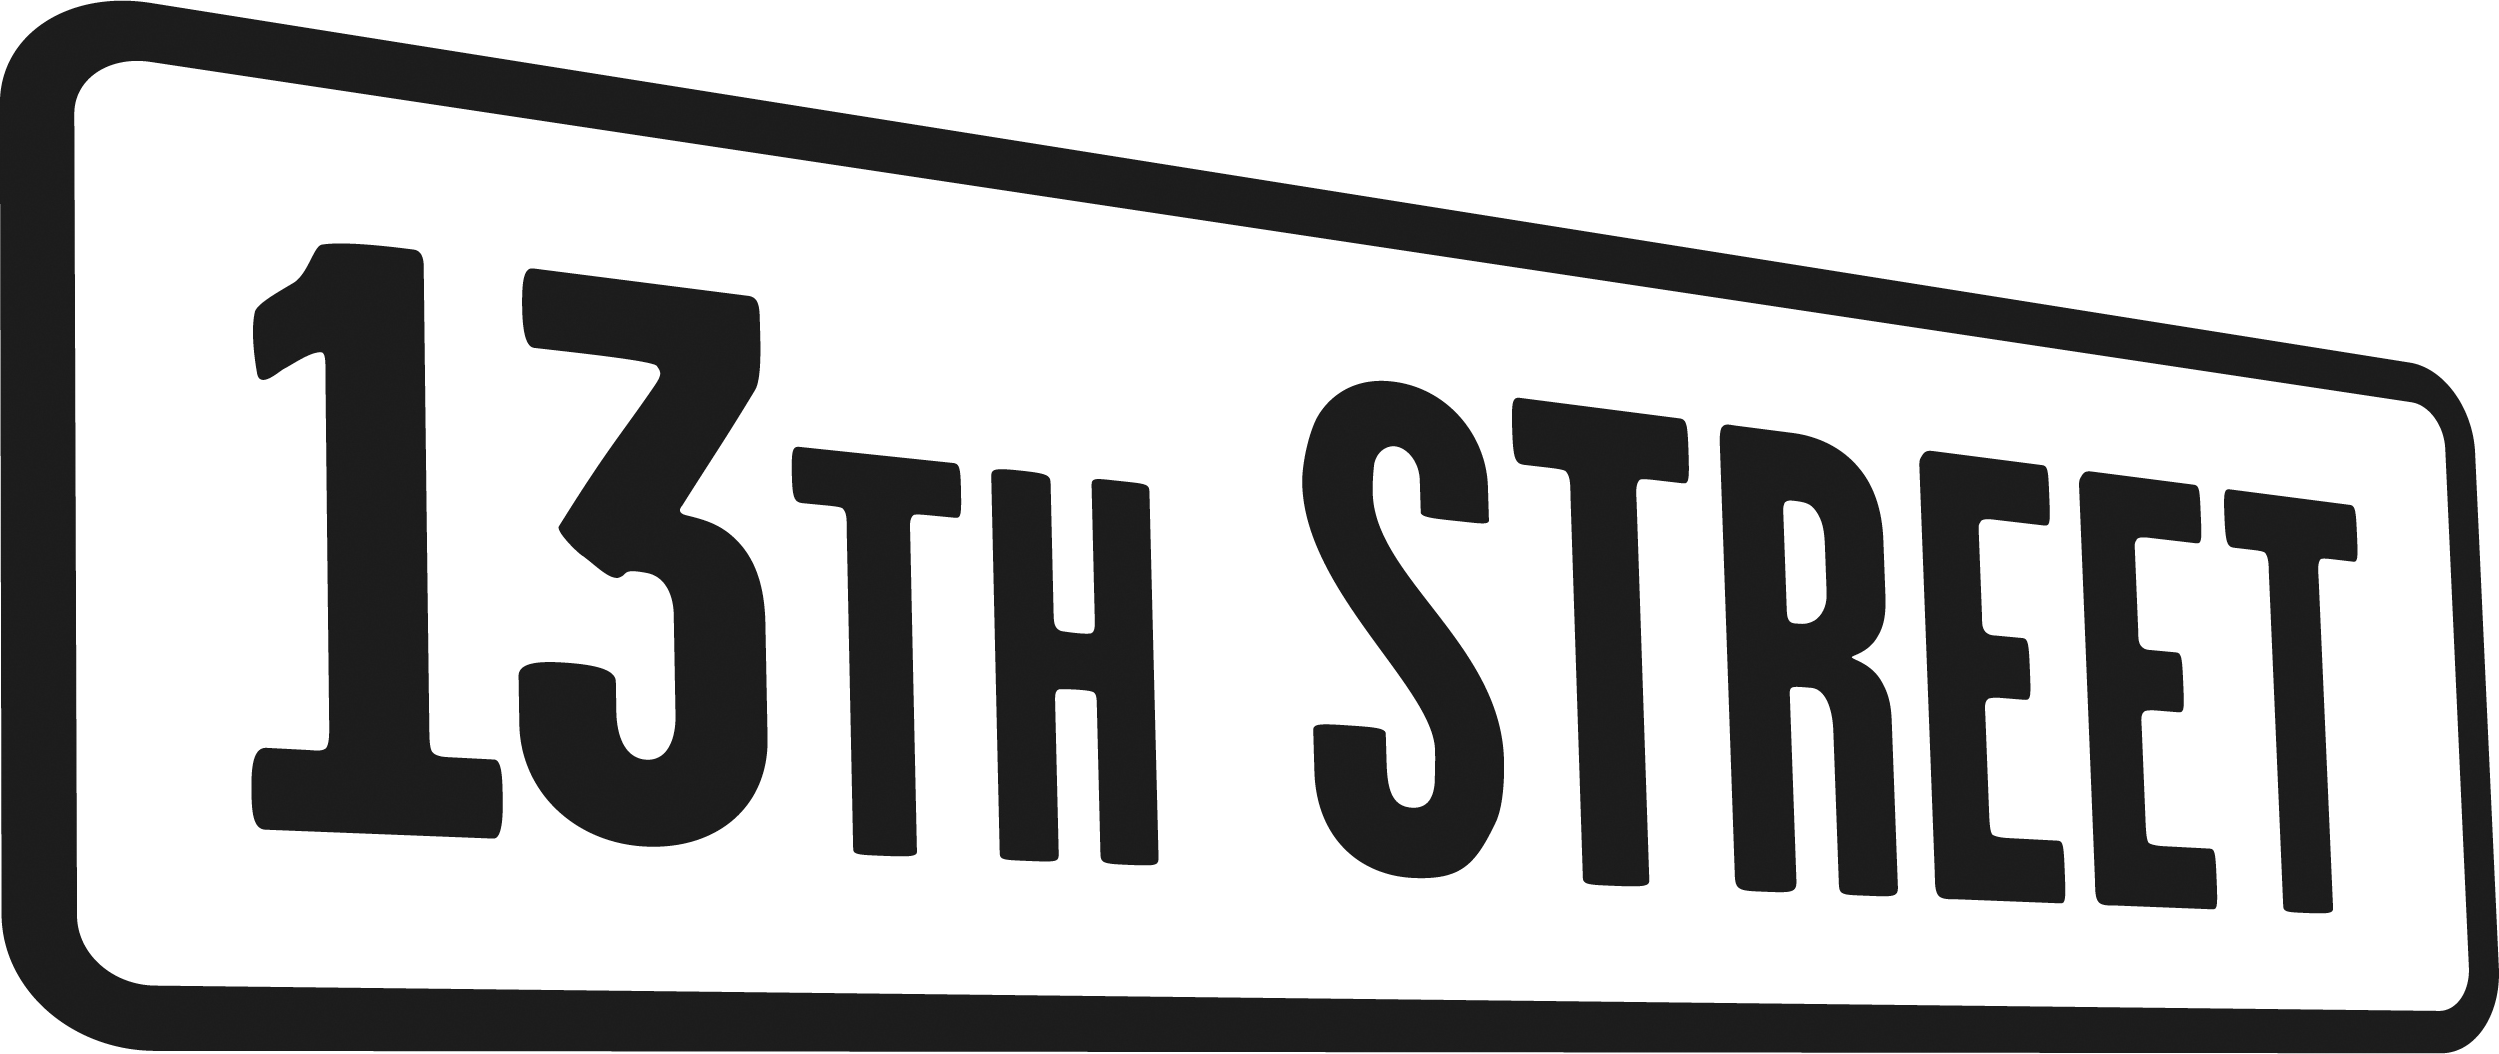 13th Street Logo photo - 1